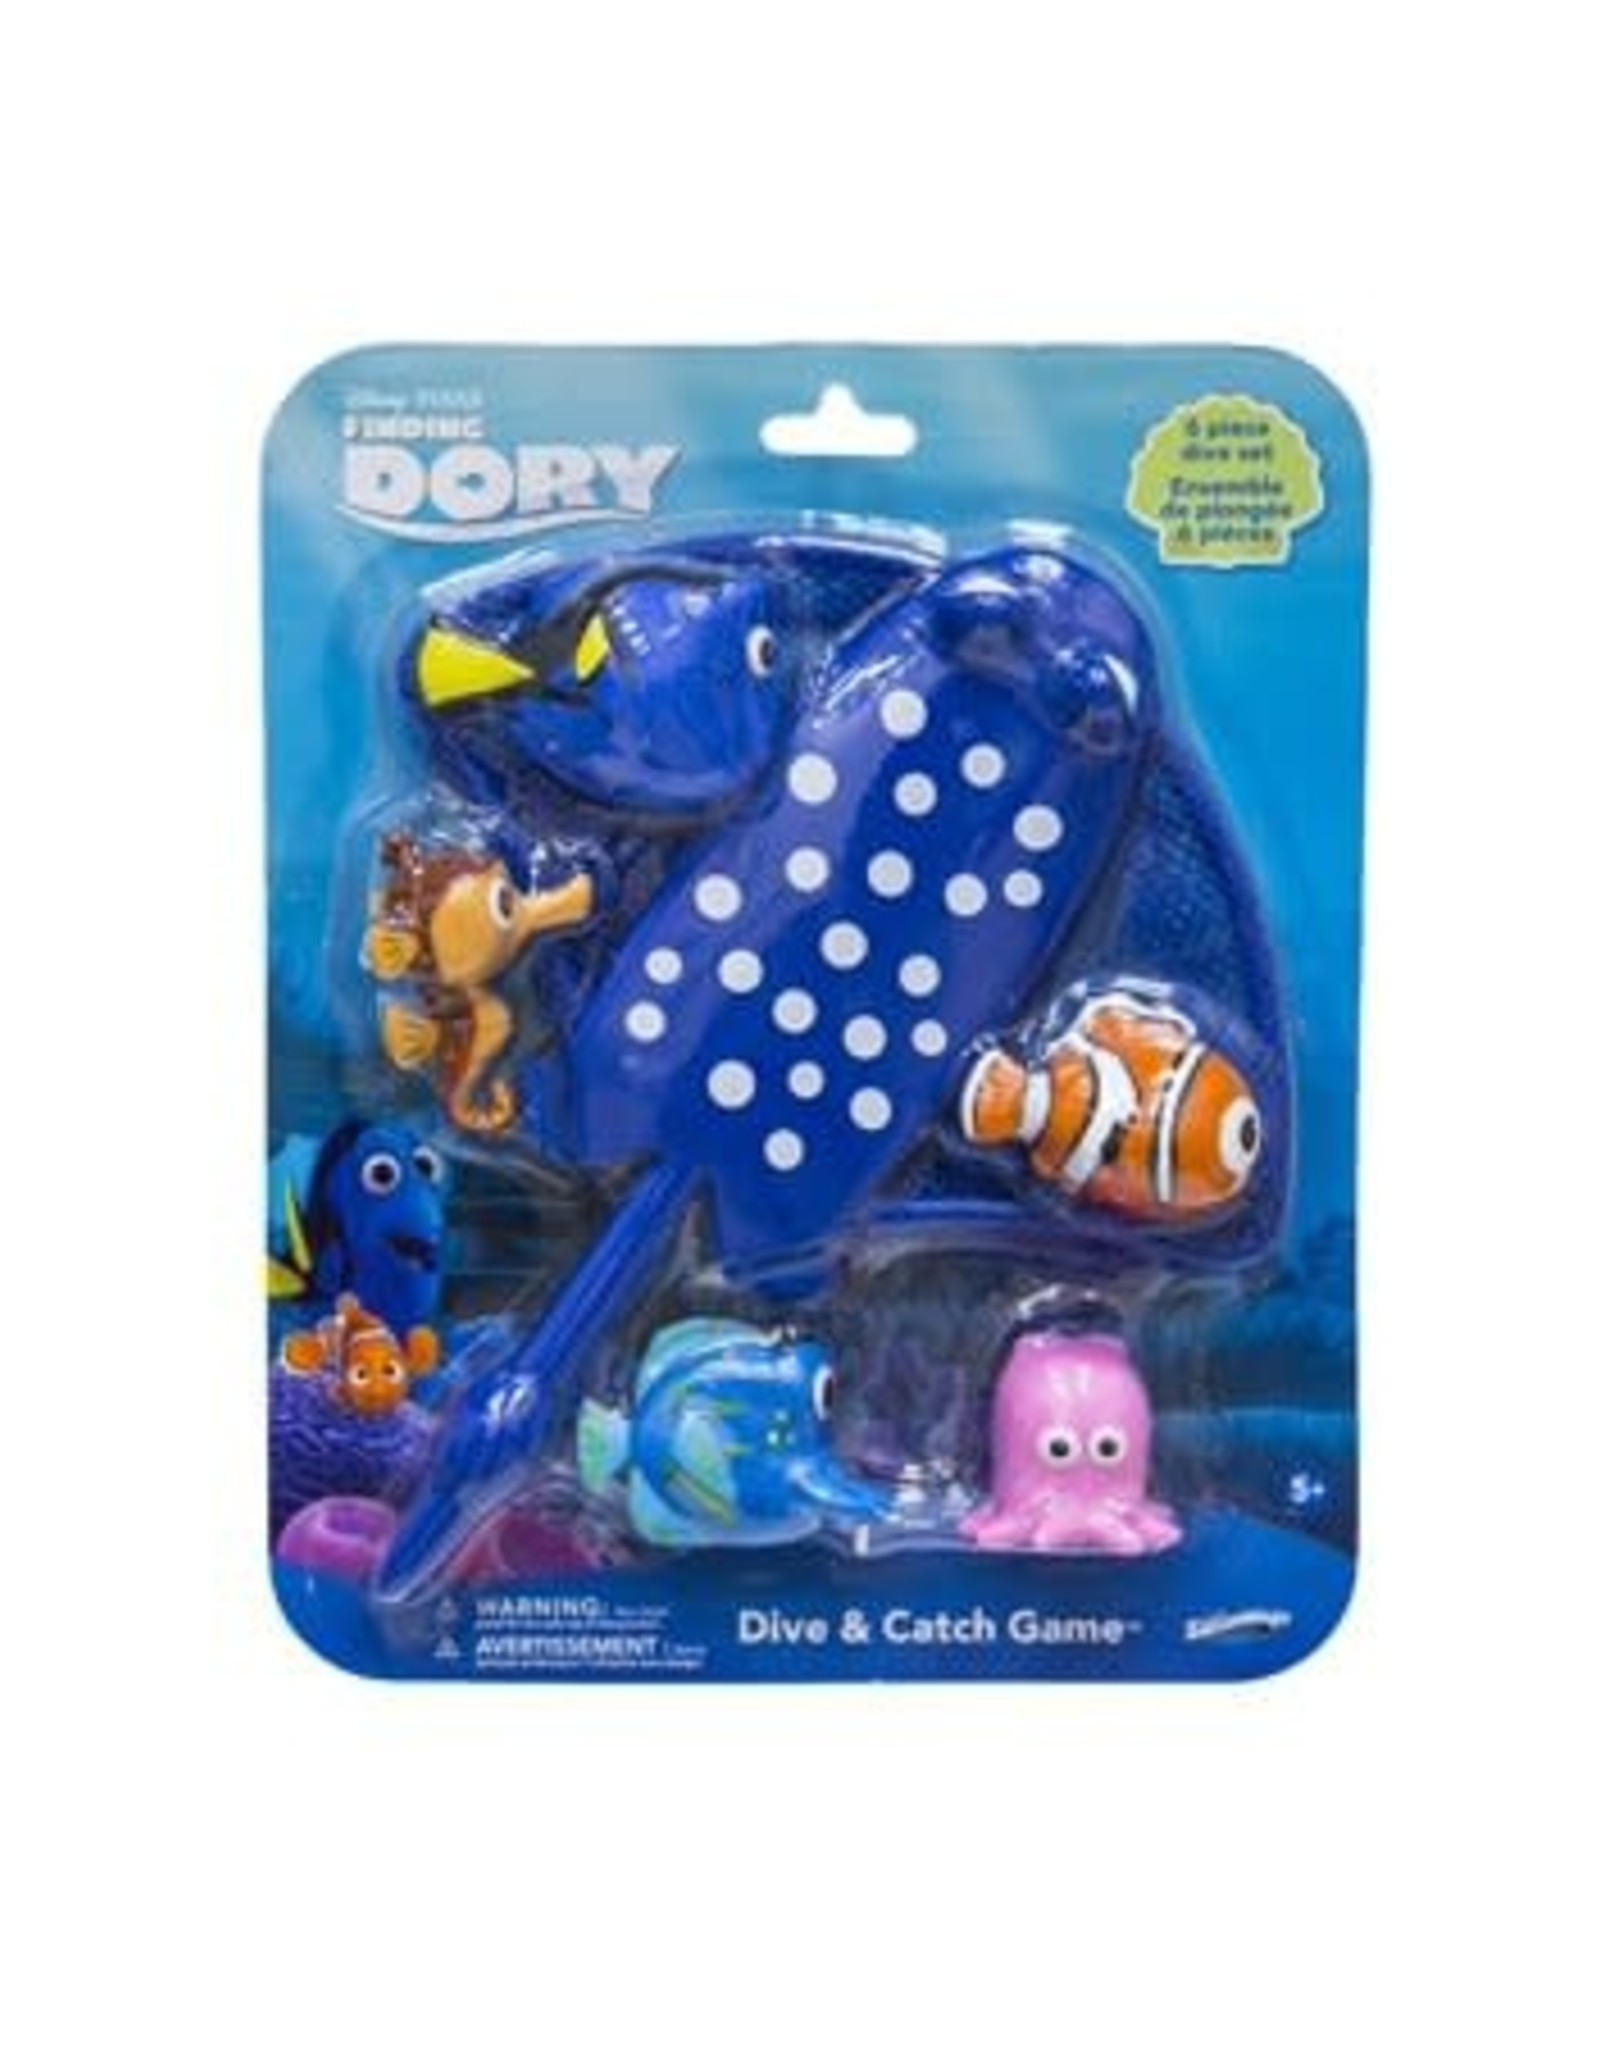 Swimways Finding Dory Mr. Rays Dive and Catch Game